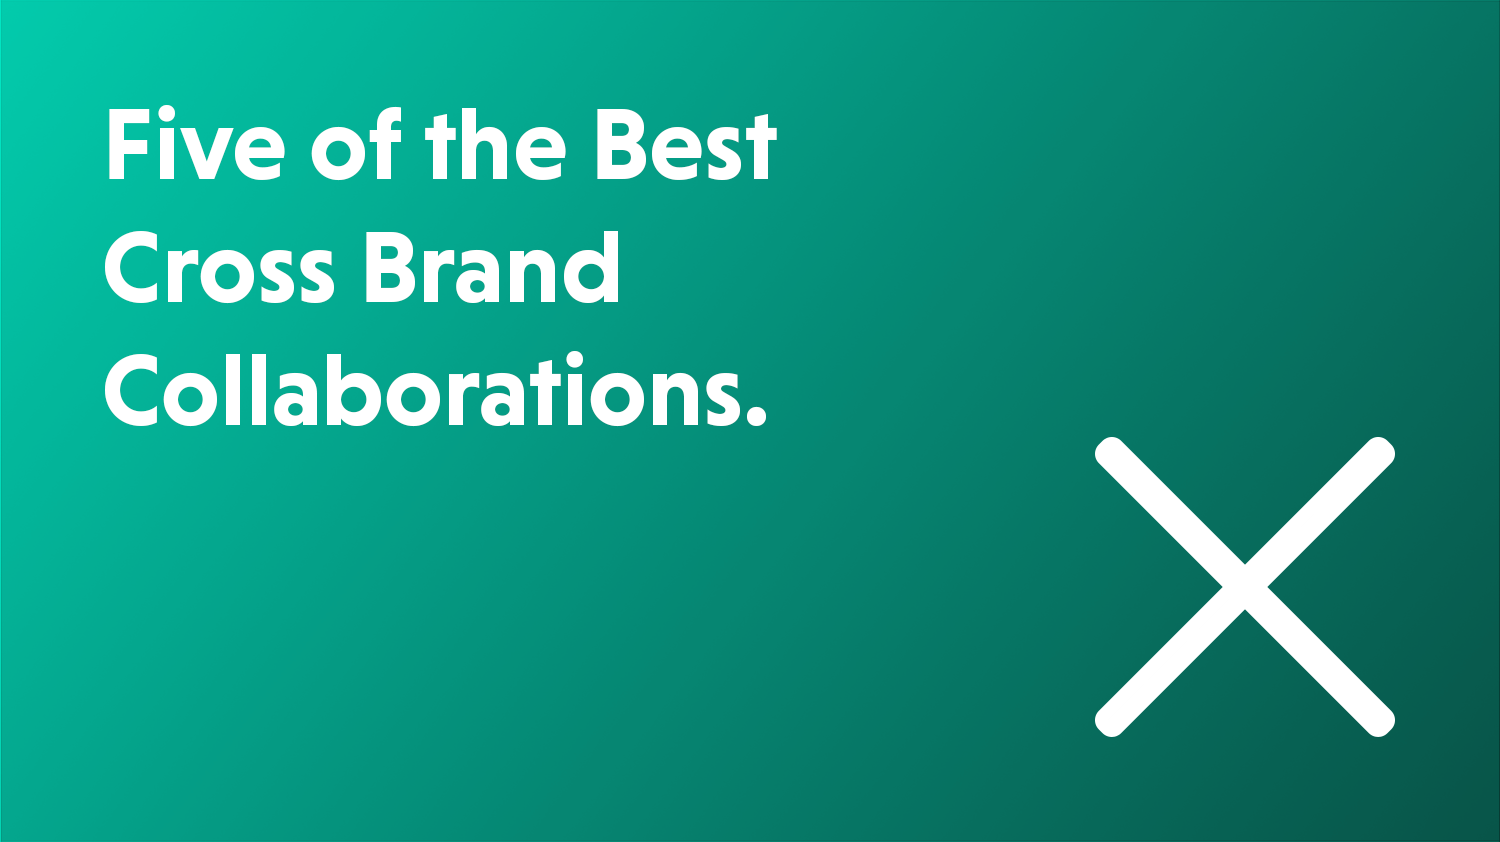 Blog cover artwork showing the title Five of The Best Cross Brand Collaborations